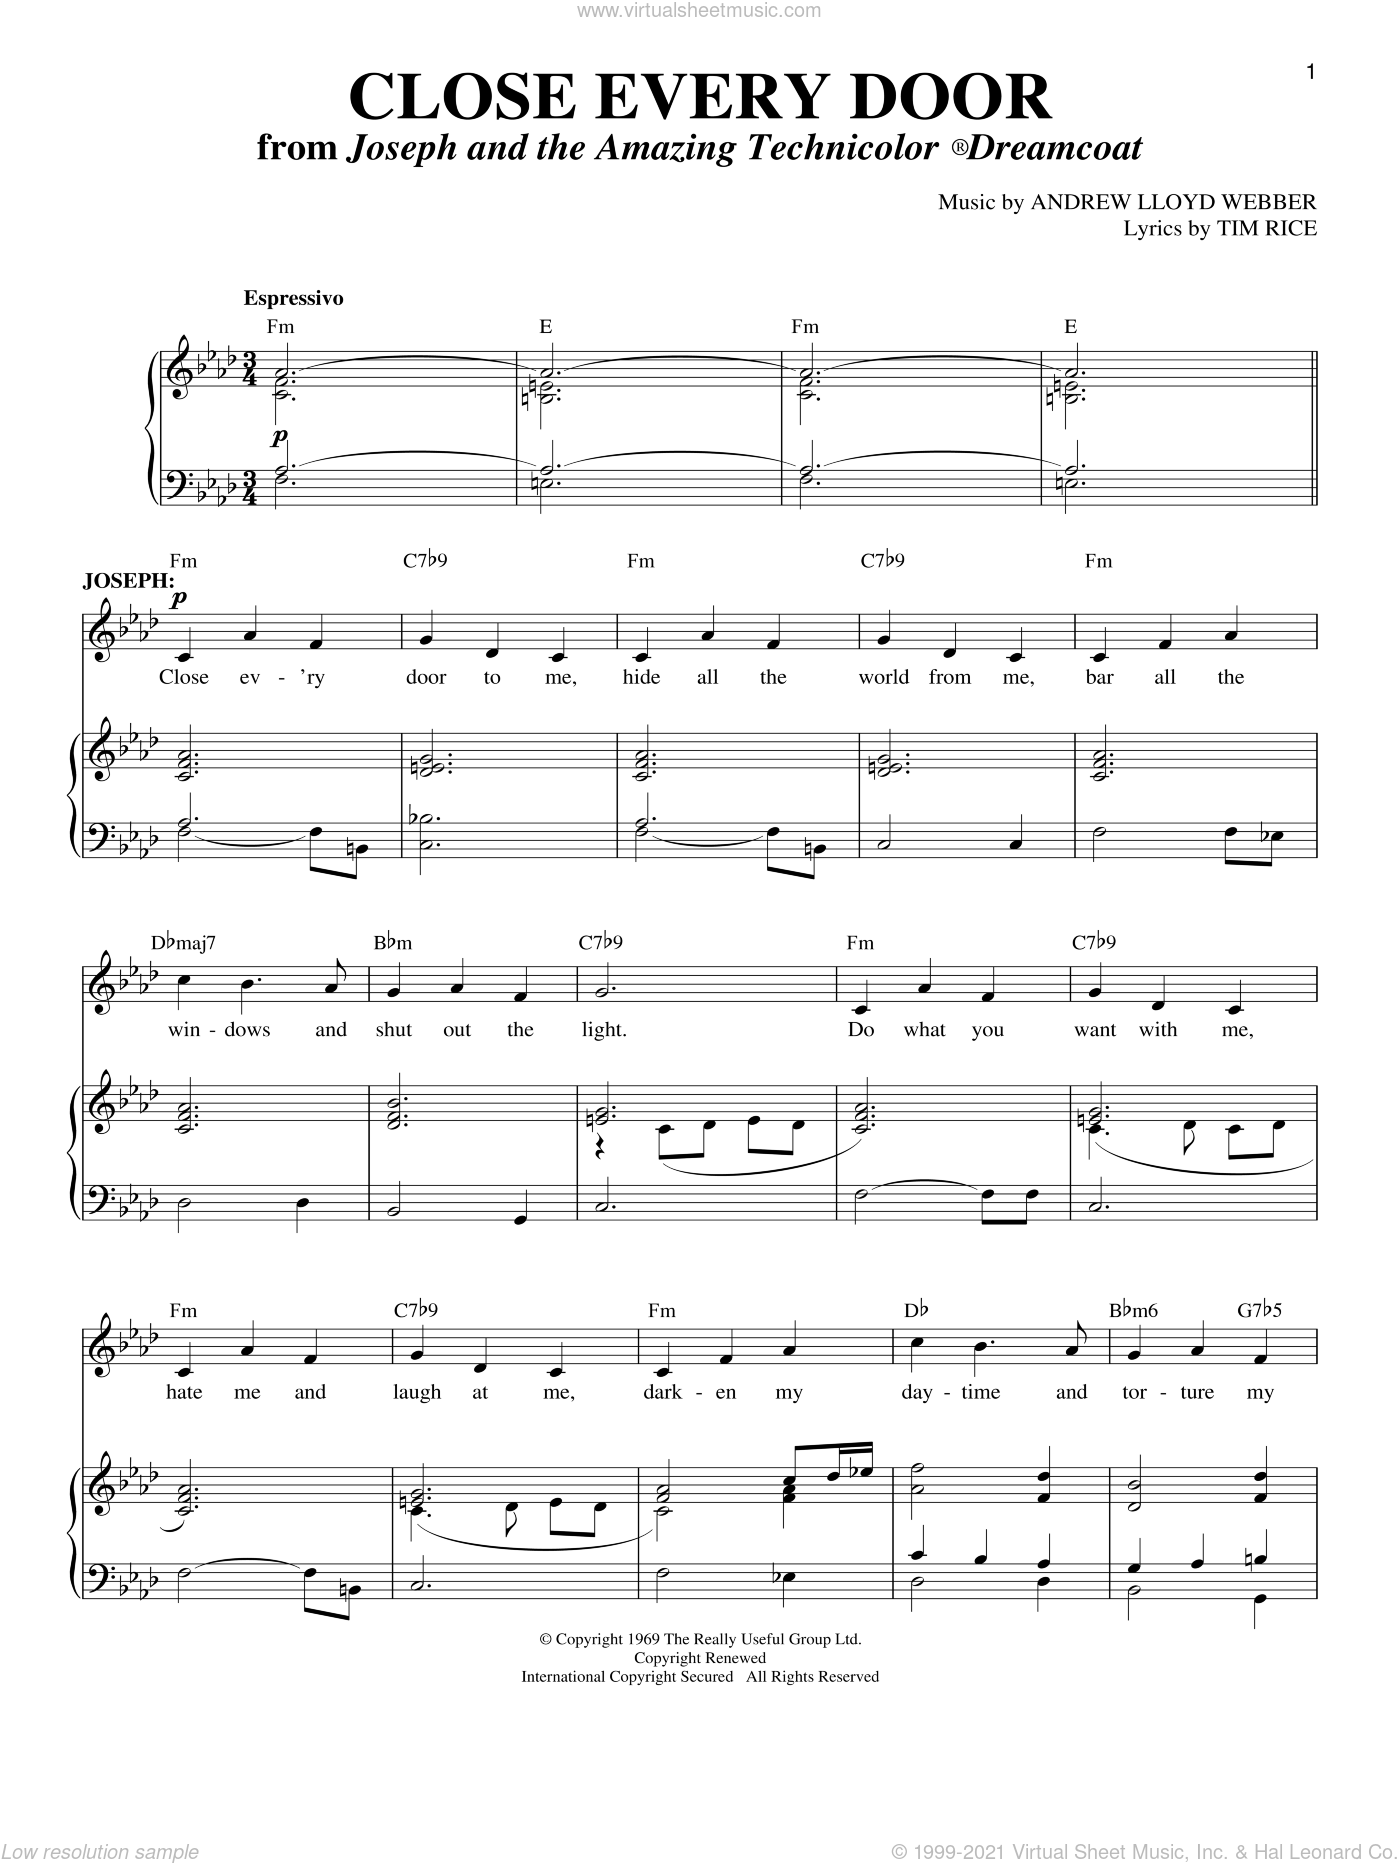 Close Every Door sheet music for voice and piano by Andrew Lloyd Webber, Joseph And The Amazing Technicolor Dreamcoat (Musical) and Tim Rice, intermediate skill level